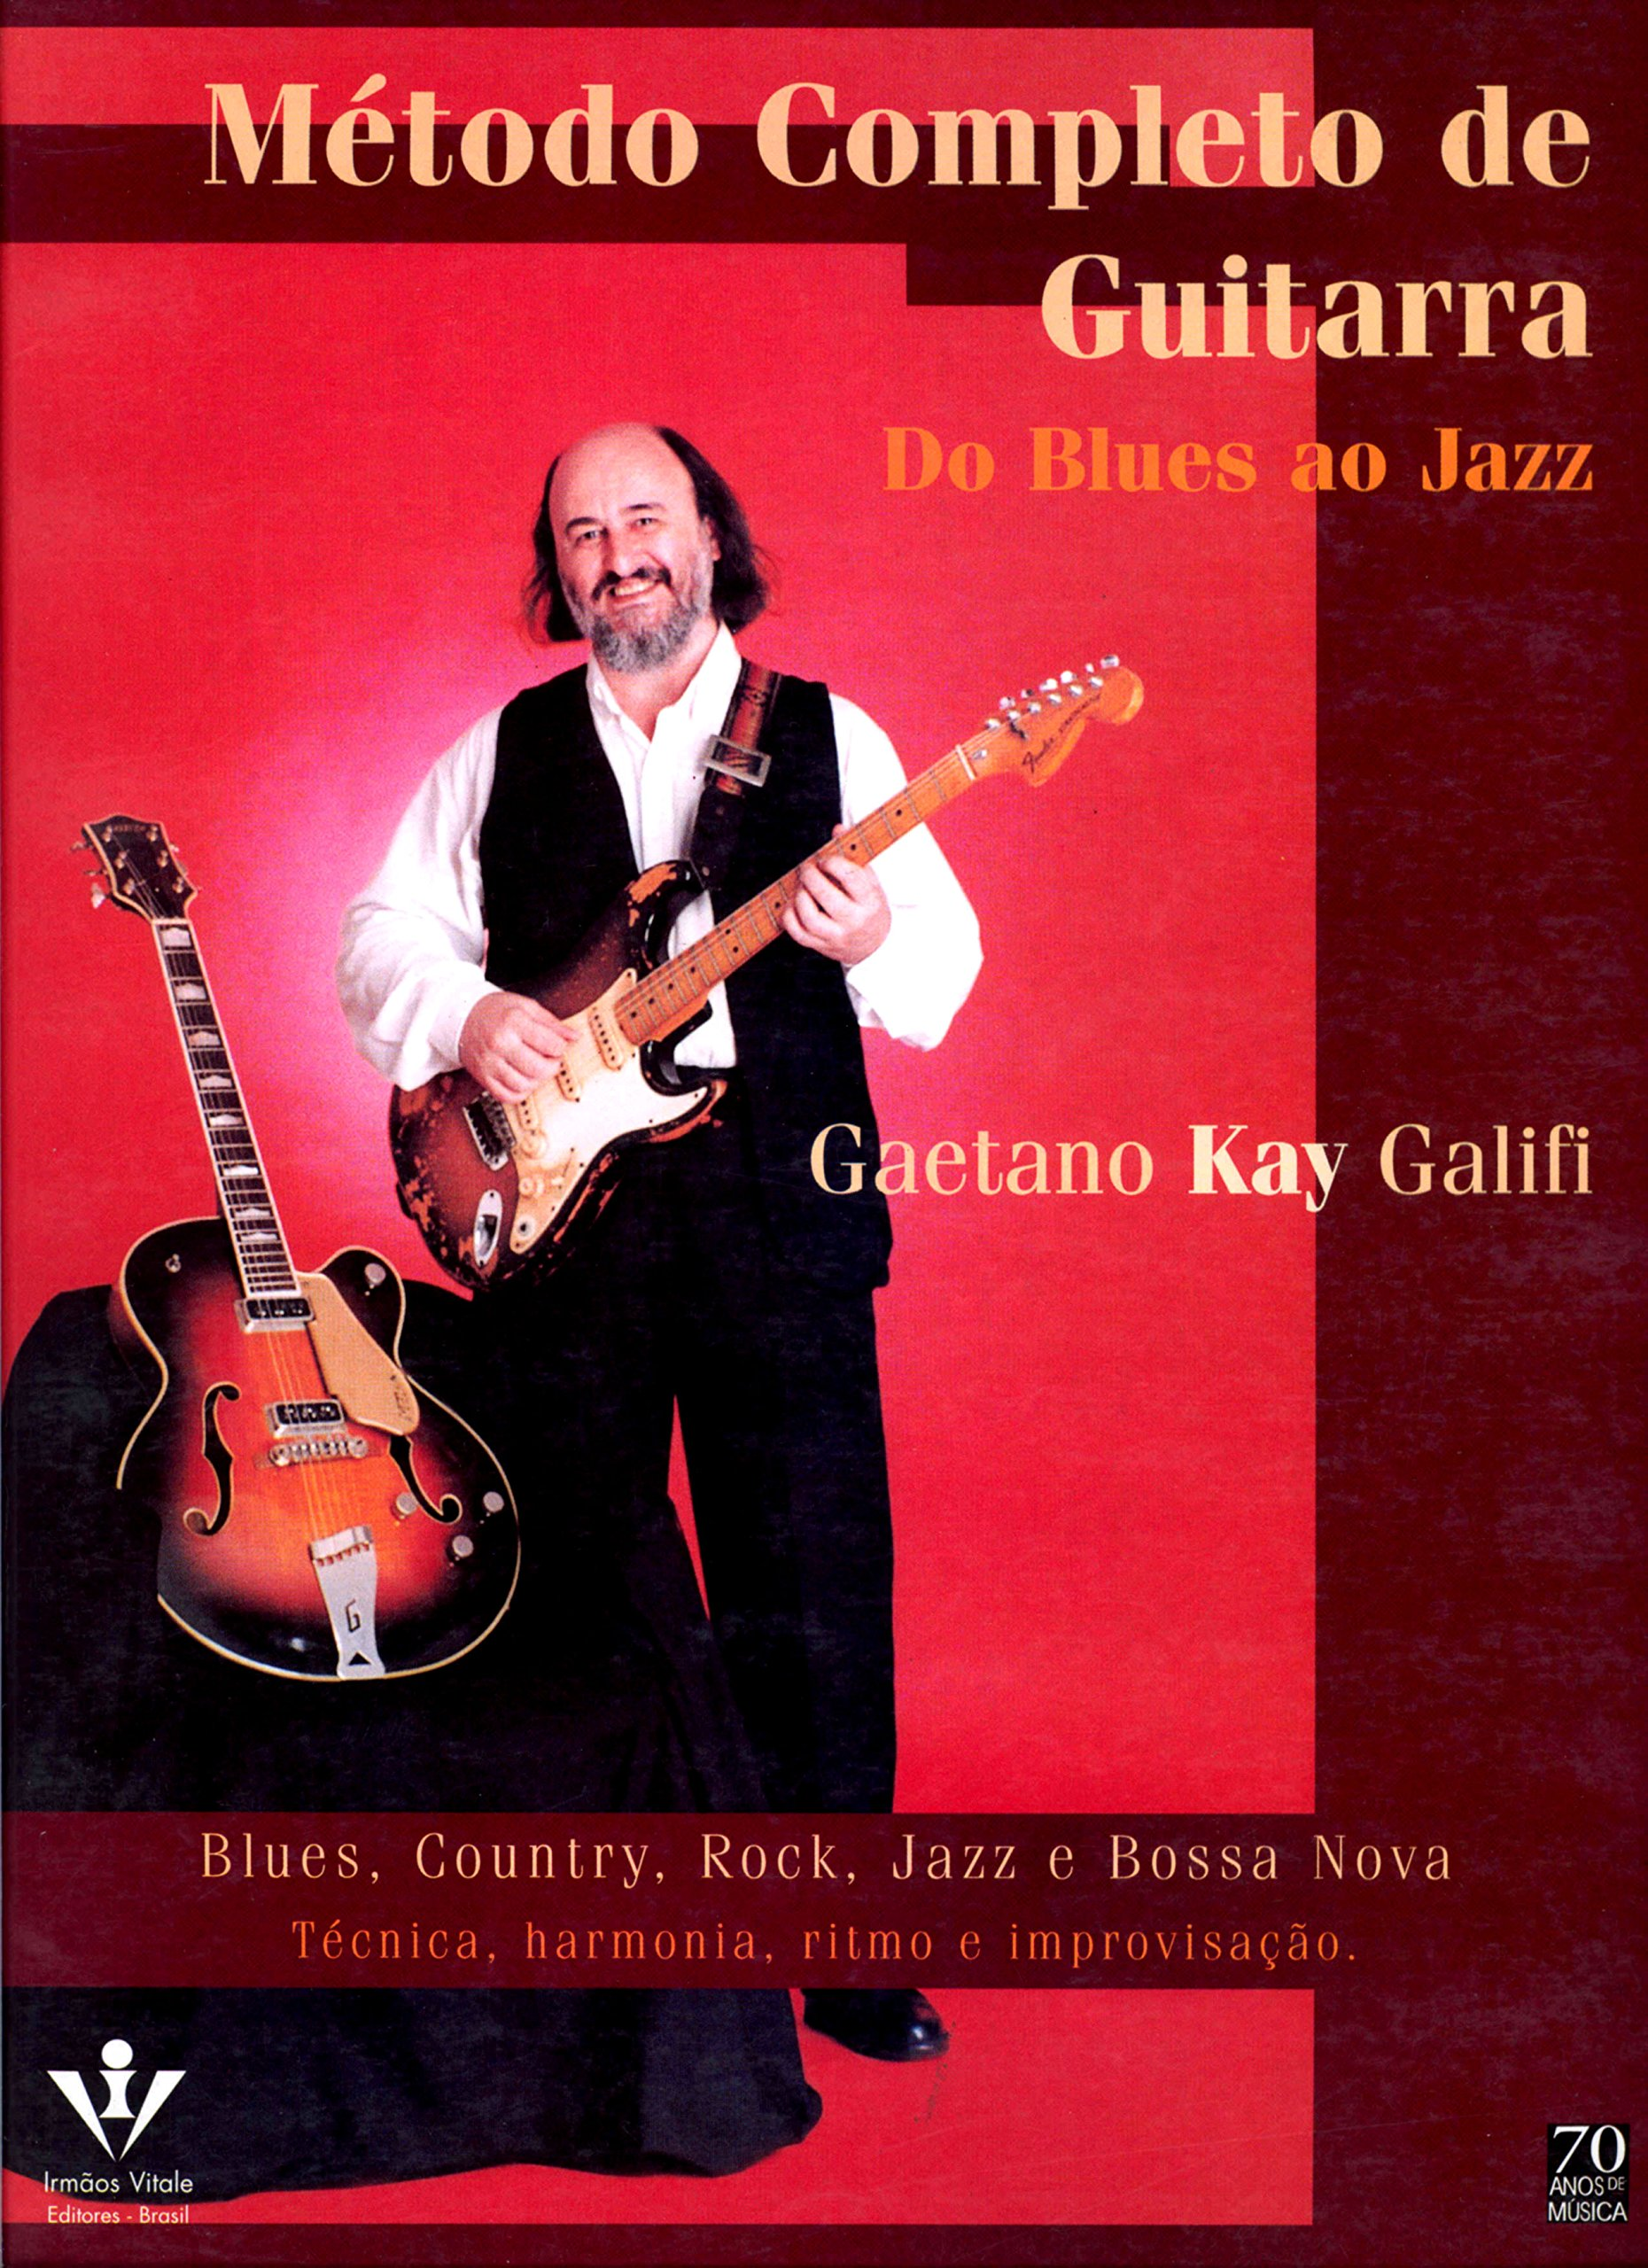 Método Completo de Guitarra. Do Blues ao Jazz: Amazon.es: Vários ...